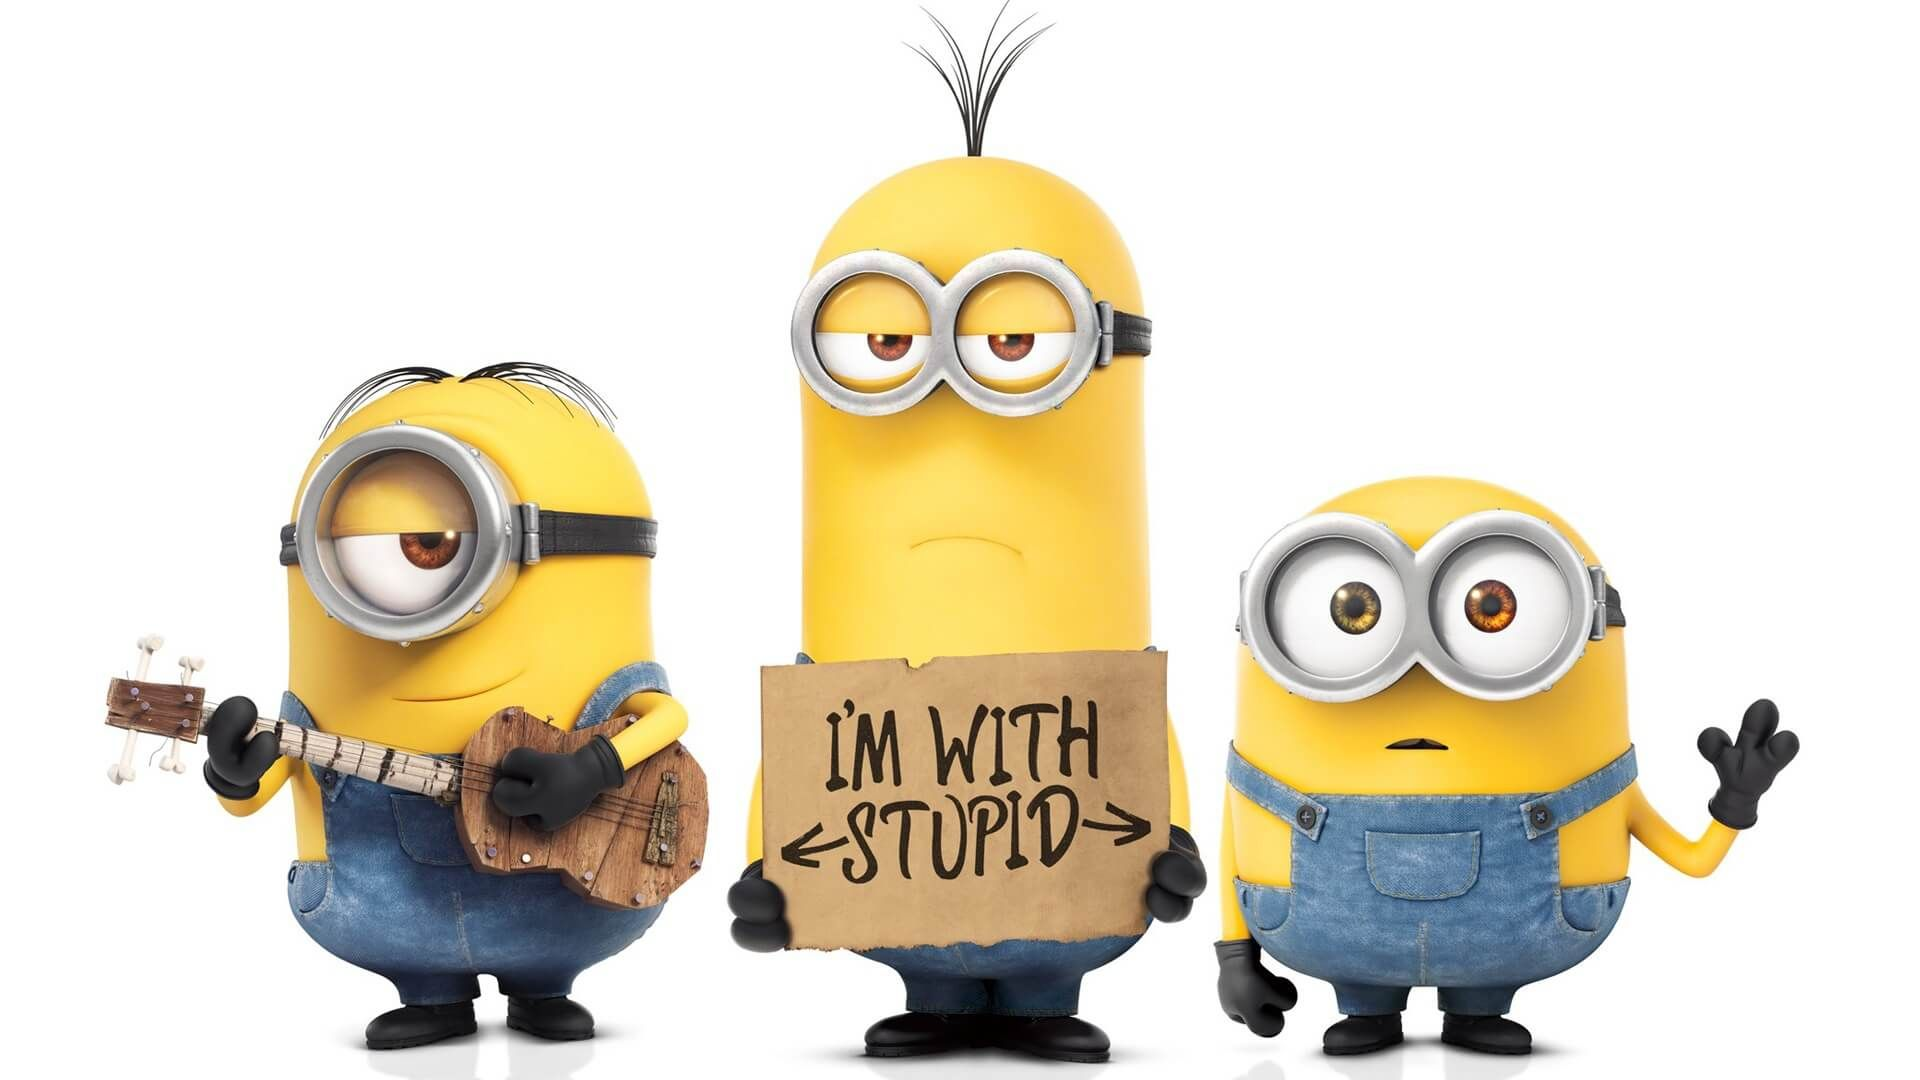 The Minions movie's food marketing tricks can make you feel stupid after buying processed foods you just don't need and aren't good for you!